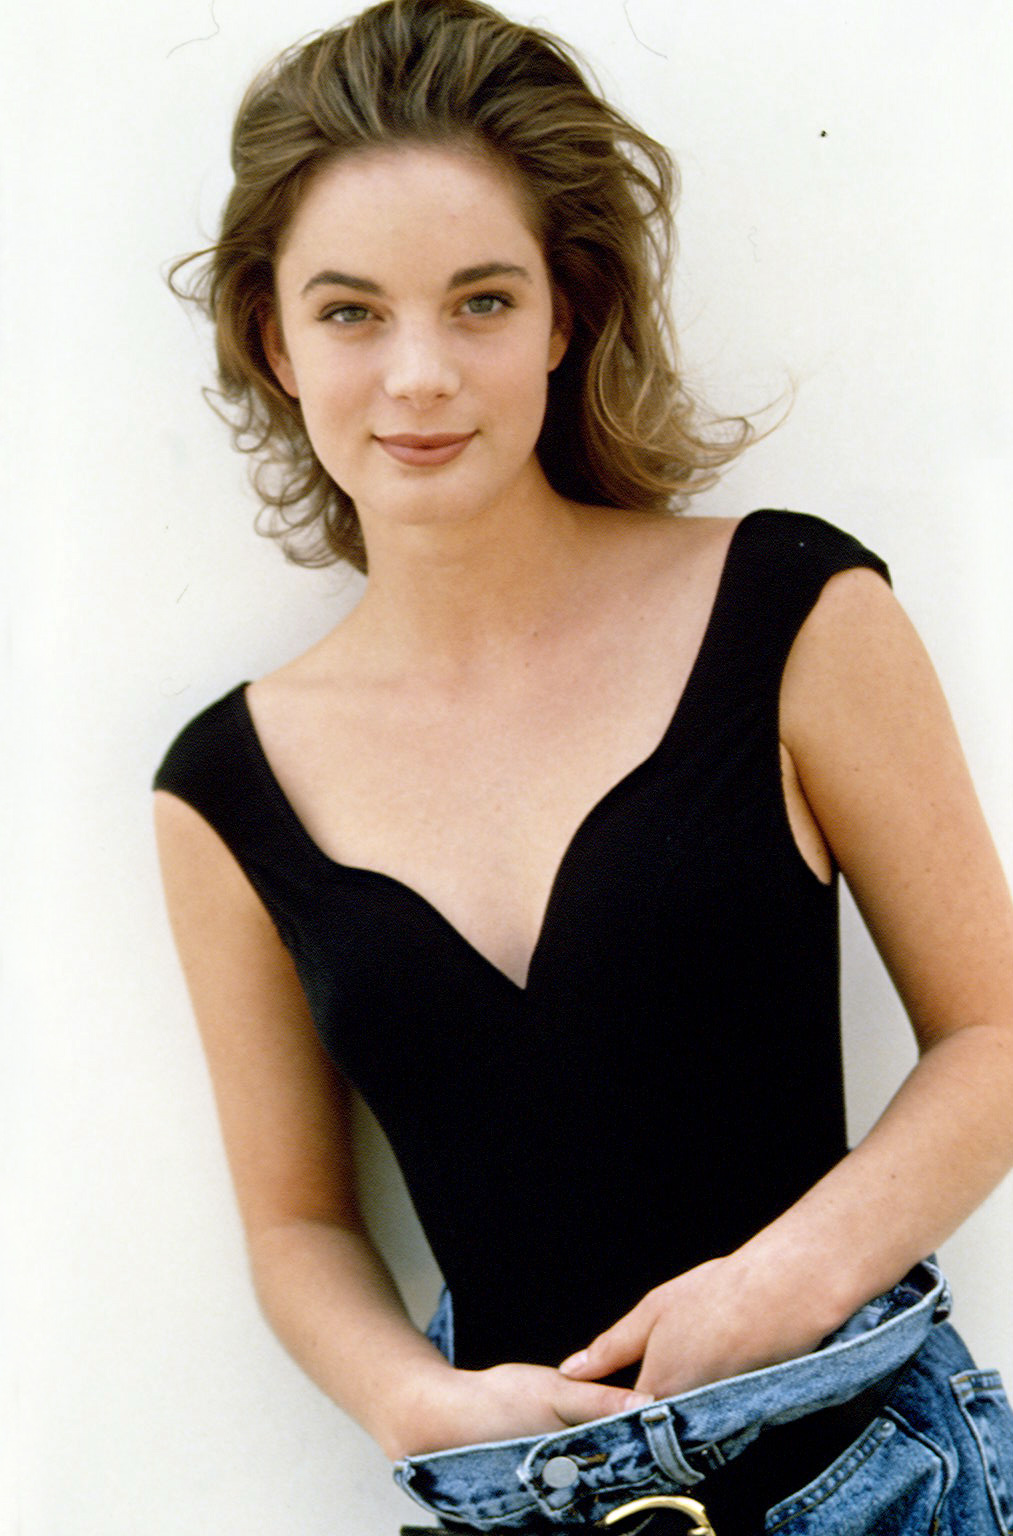 Young Celebrity Photo Gallery: Gabrielle Anwar as Young Girl